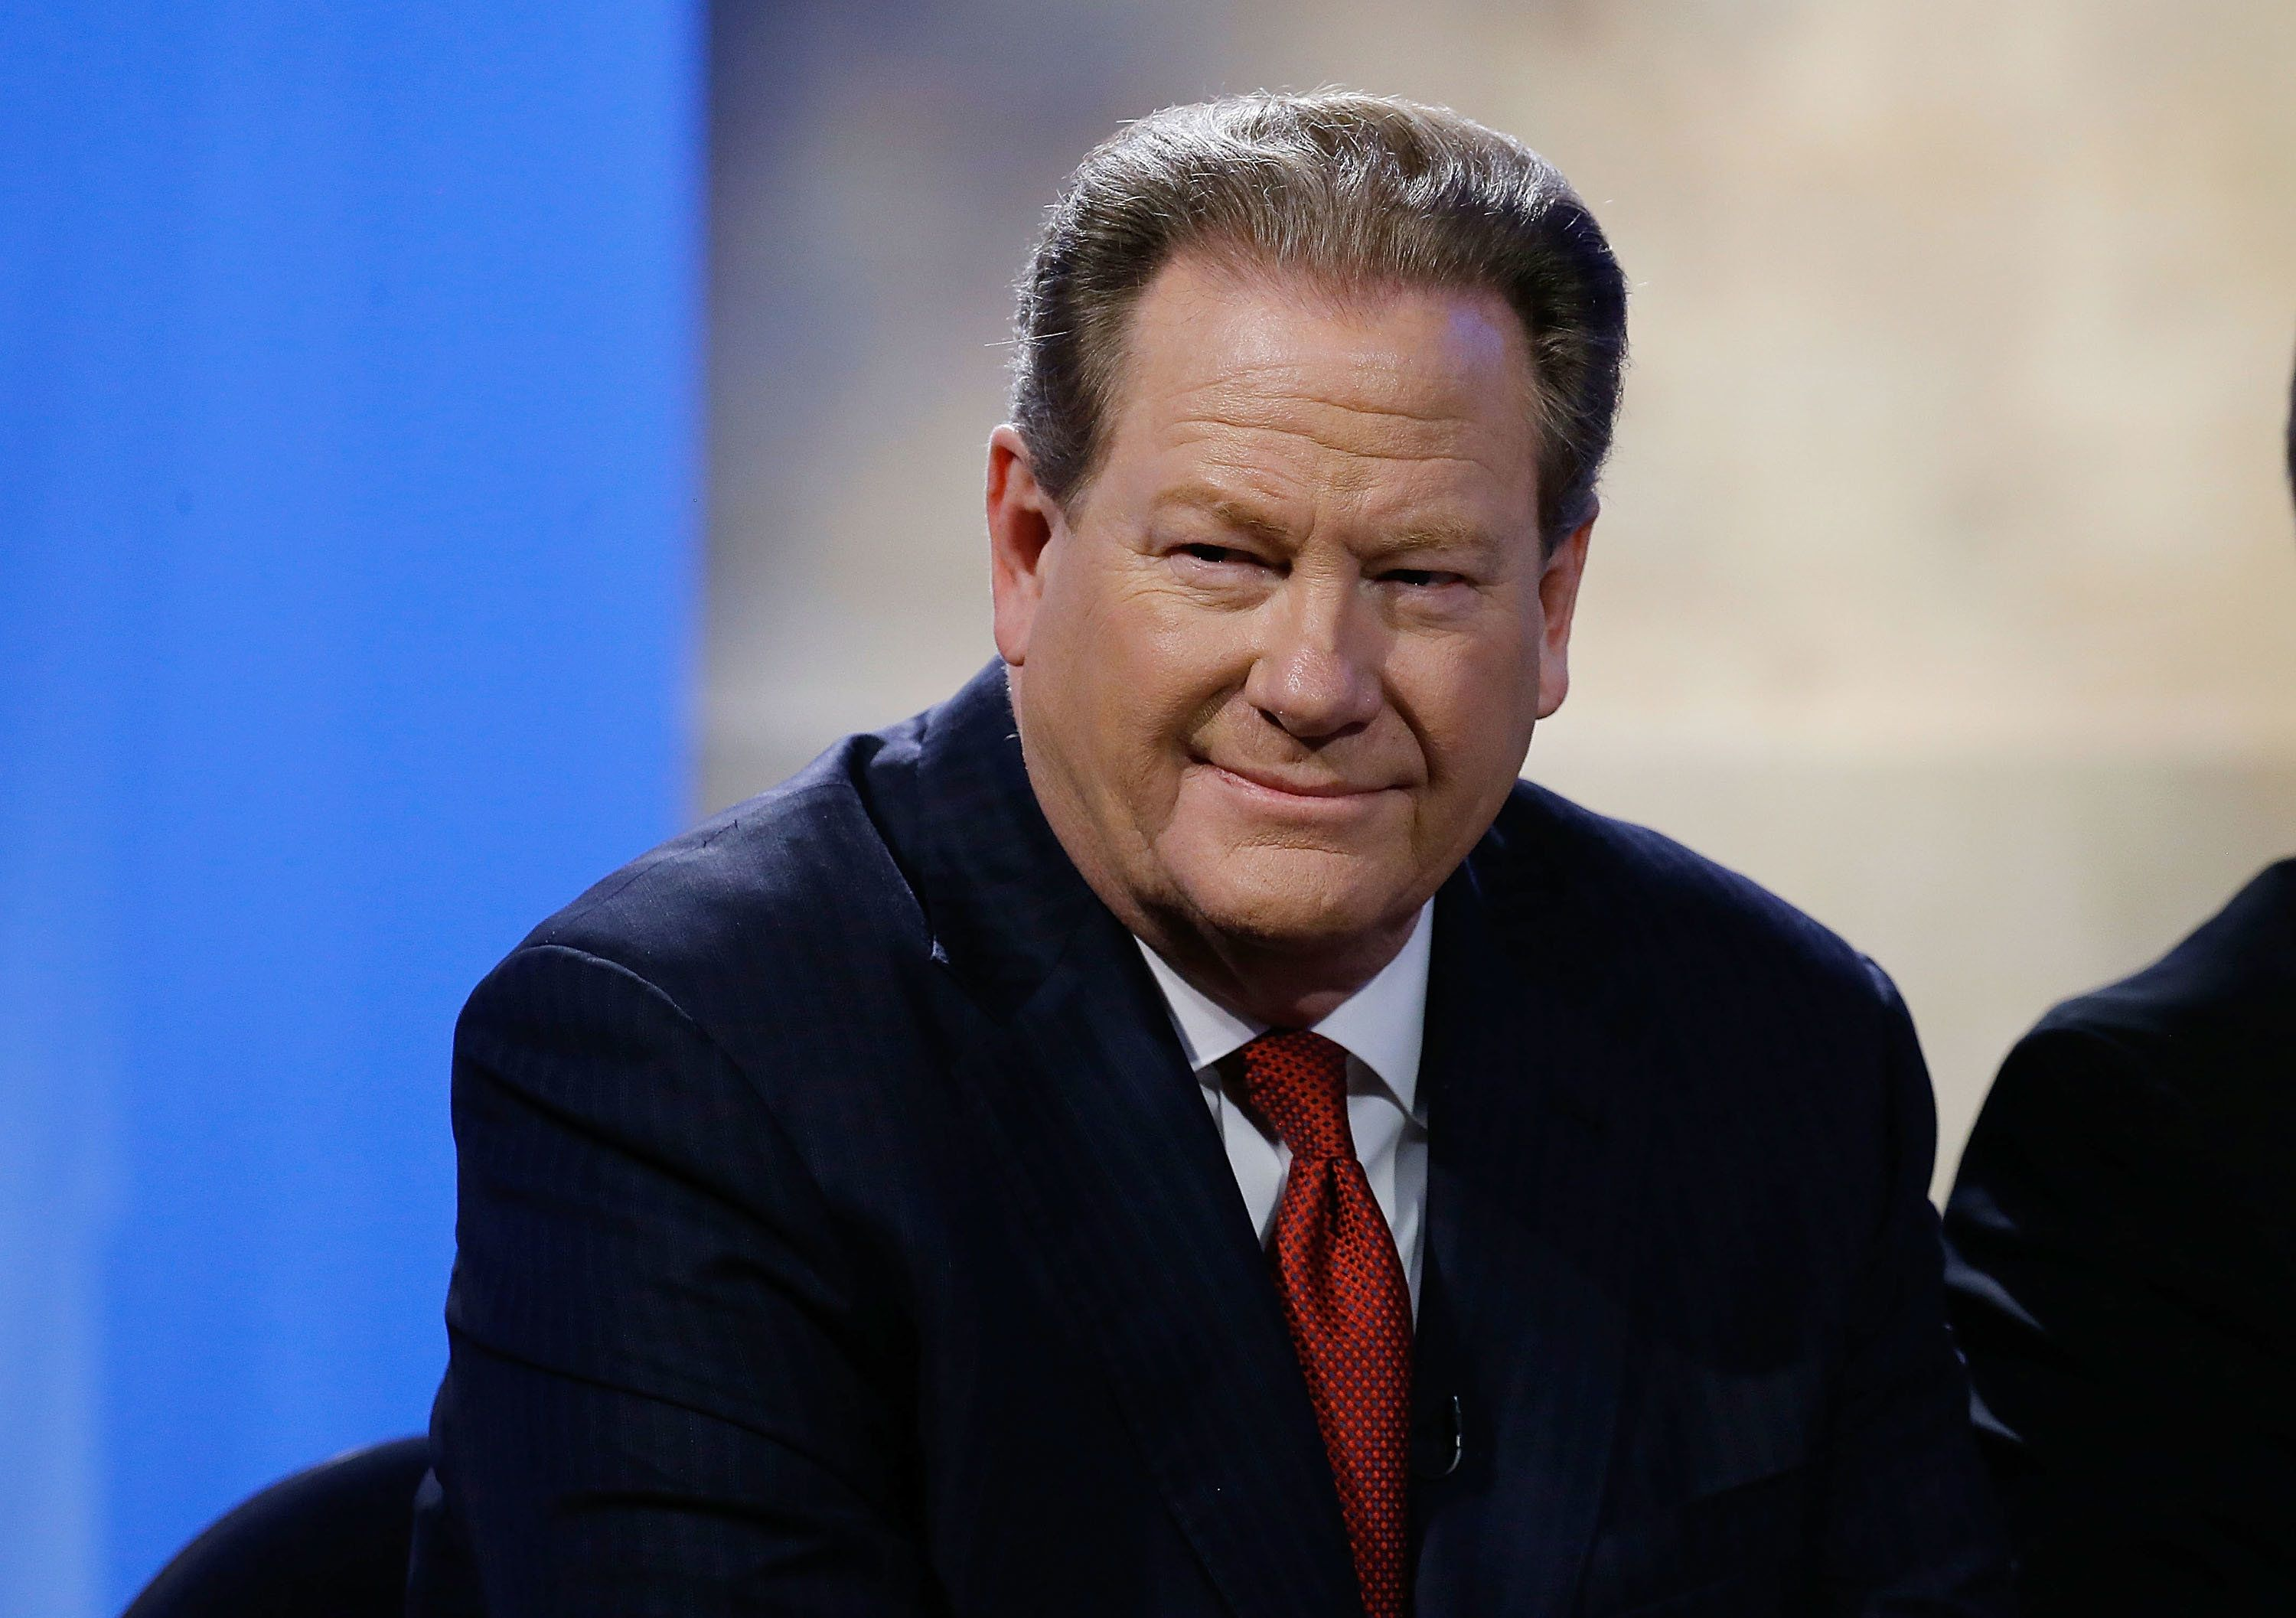 Ed Schultz, MSNBC Broadcaster And Radio Personality, Dead At 64